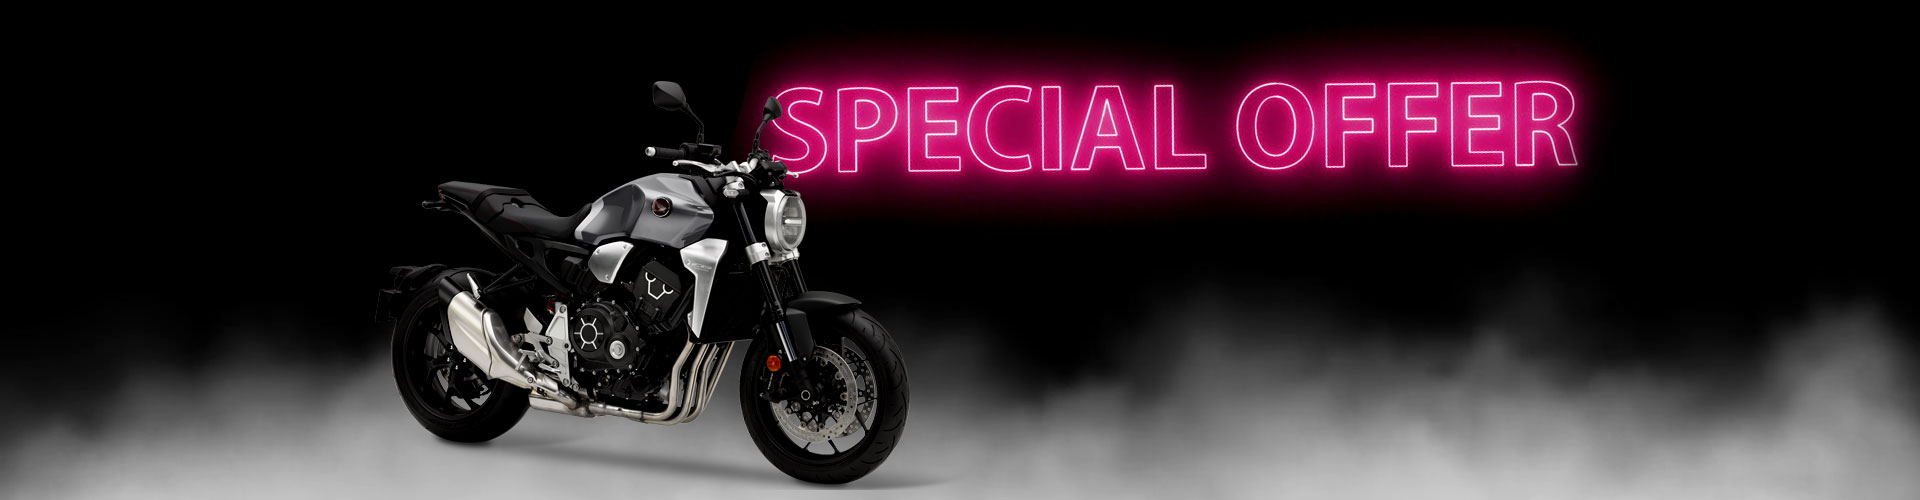 New Honda Motorcycles offers